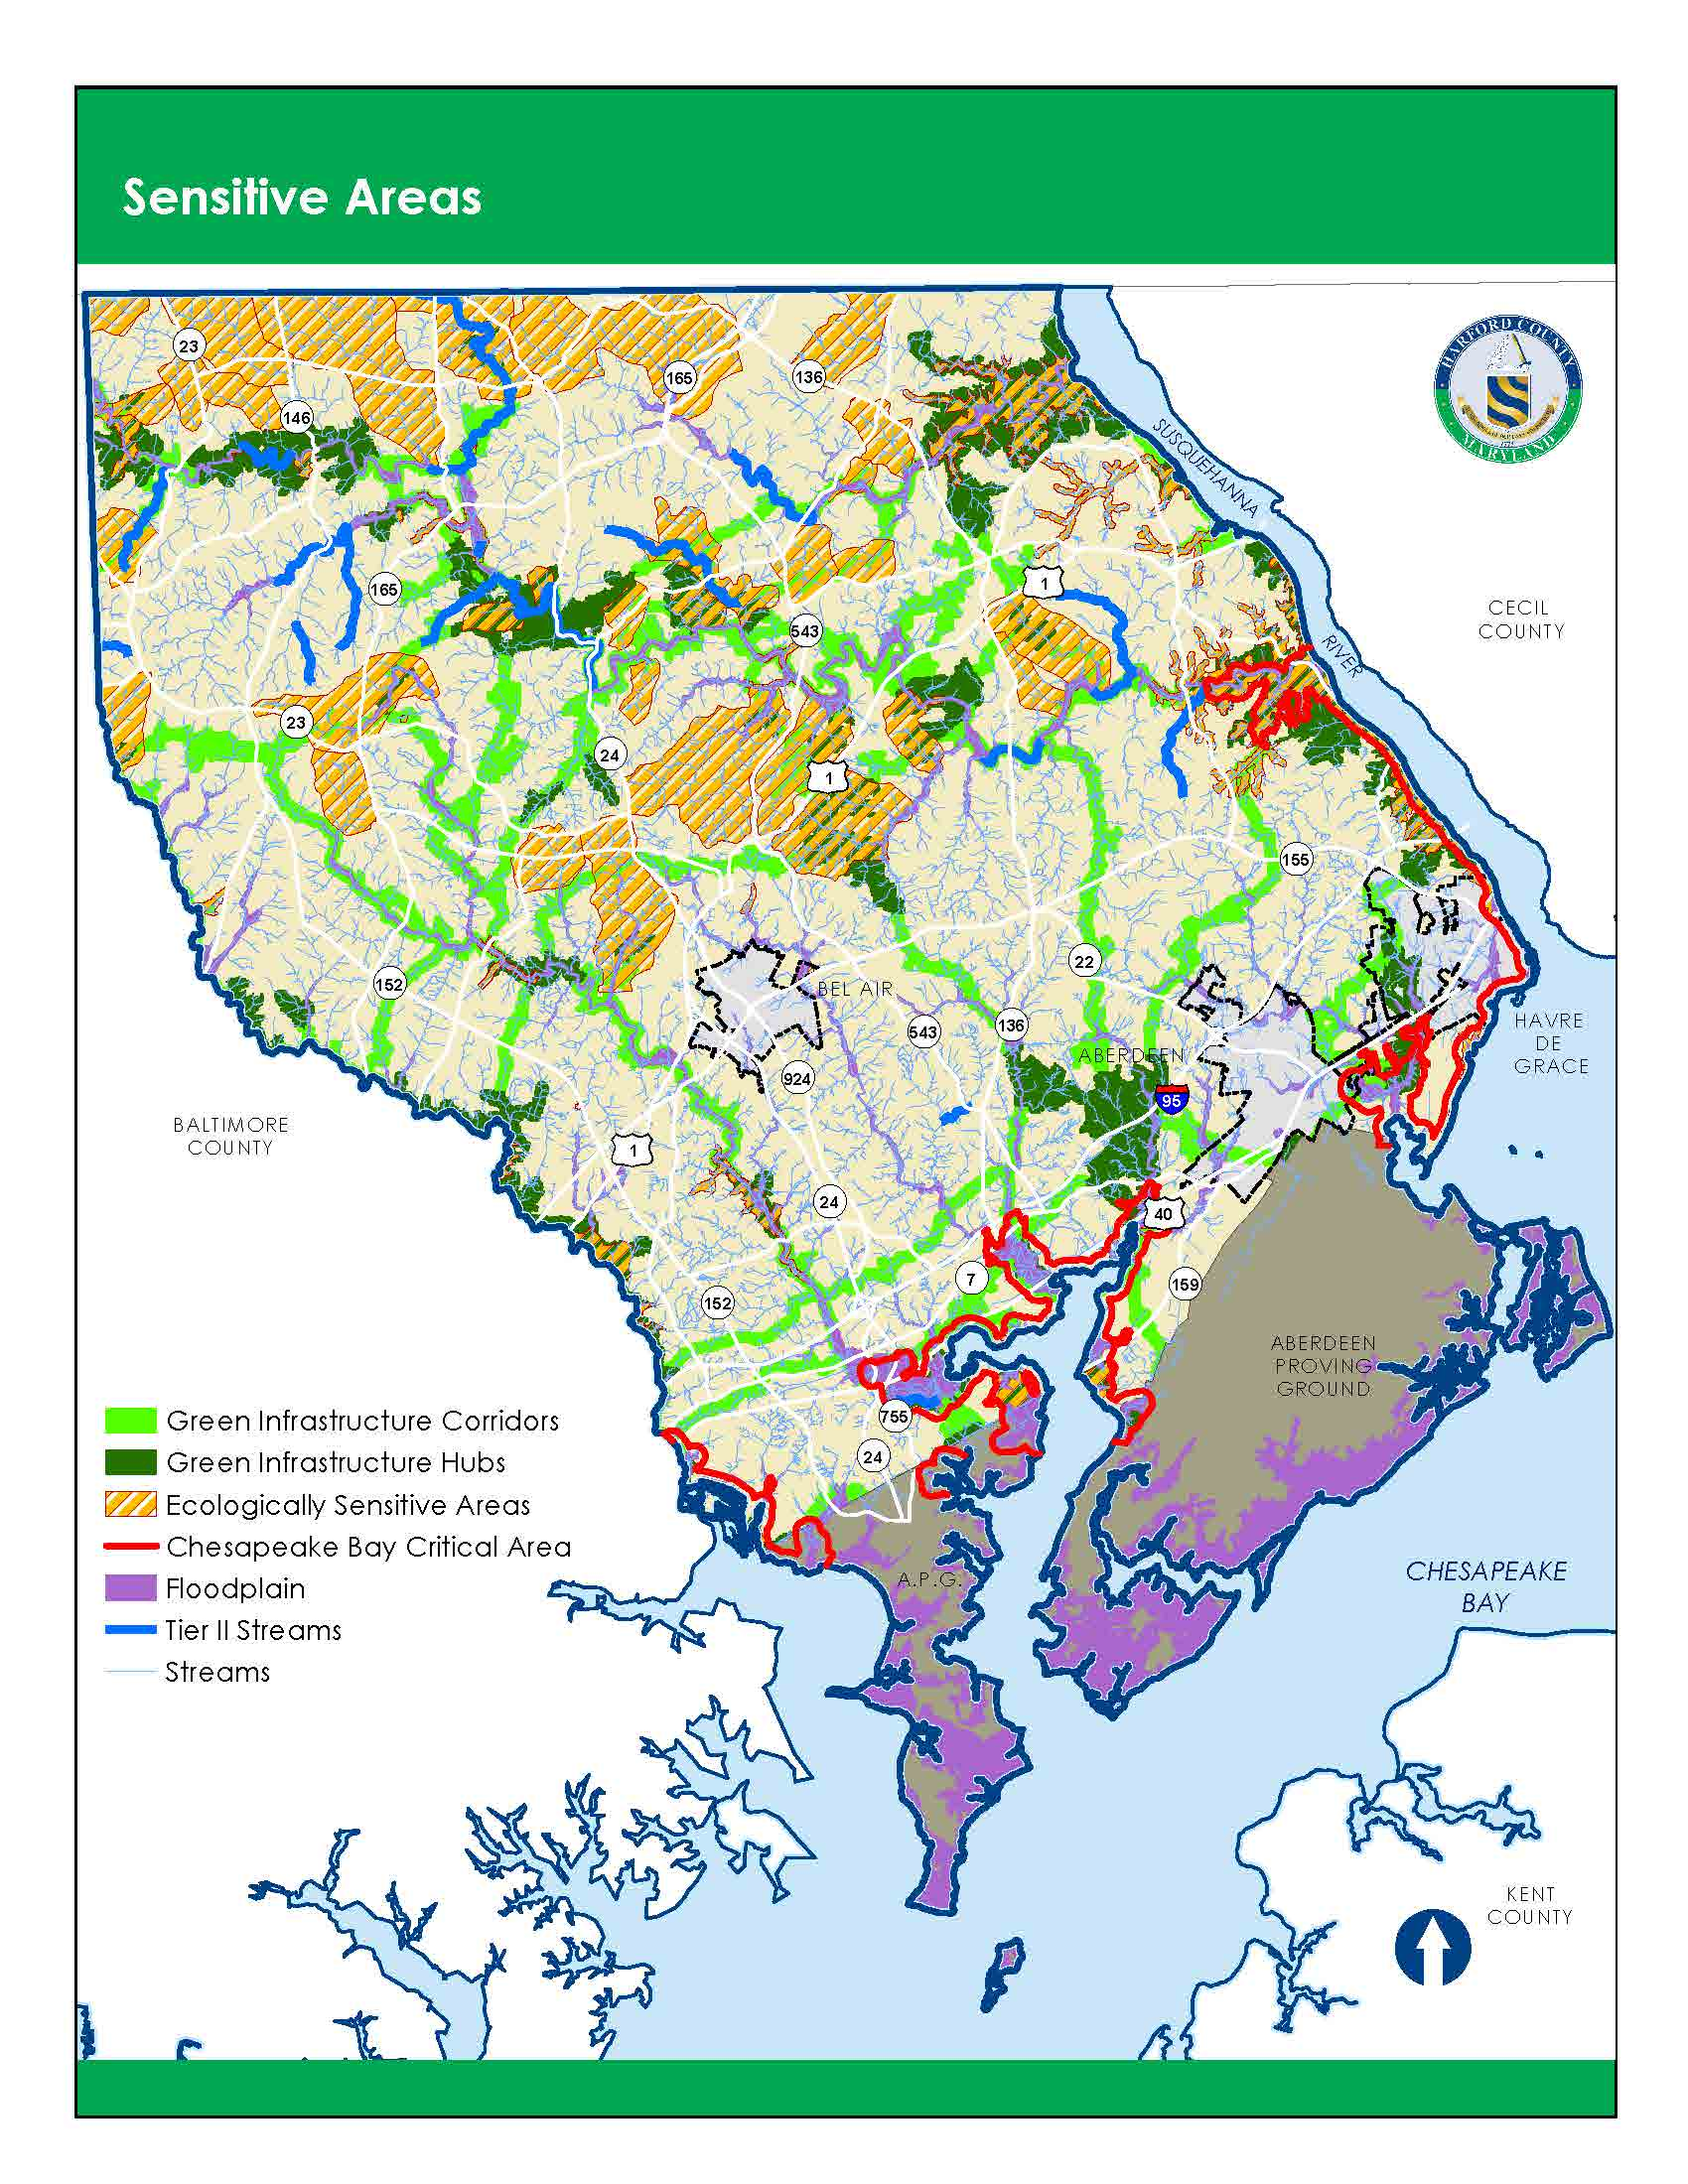 Areas of environmental importance. Green infrastructure areas, critical areas, and floodplain.